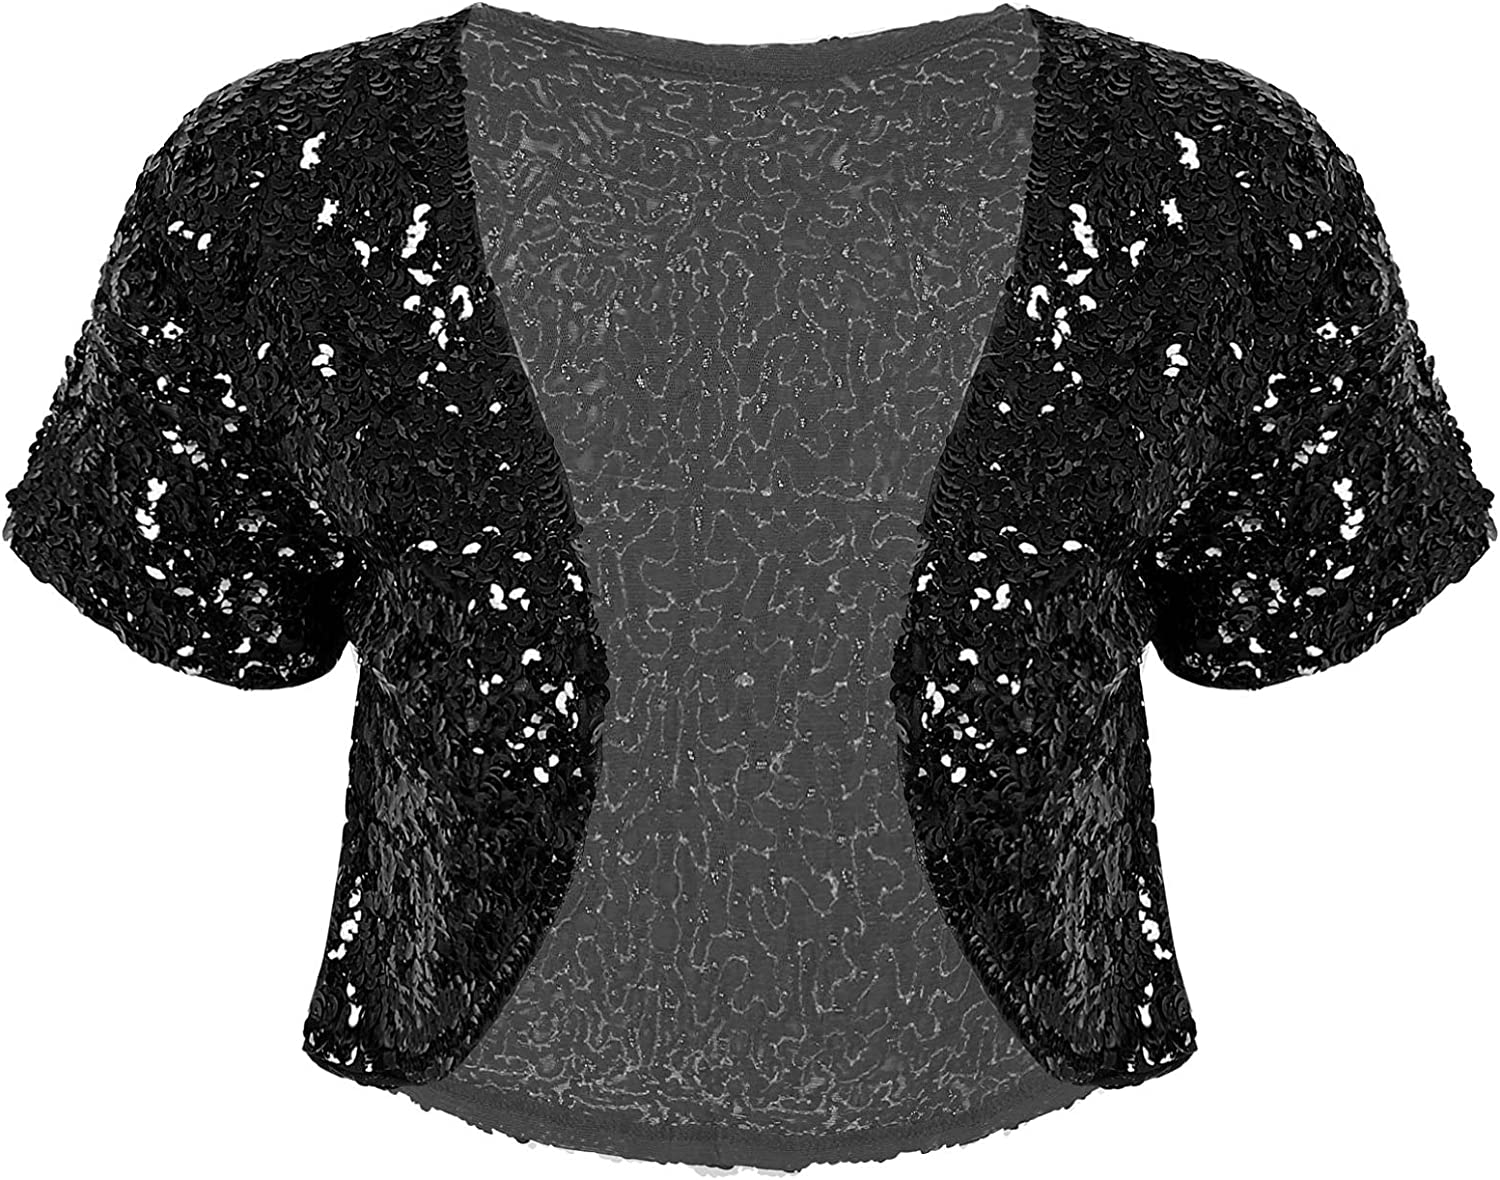 dPois Mesa Mall Women's Shiny Sequin Open Bolero Clearance SALE! Limited time! Shrug Spar Cardigan Front